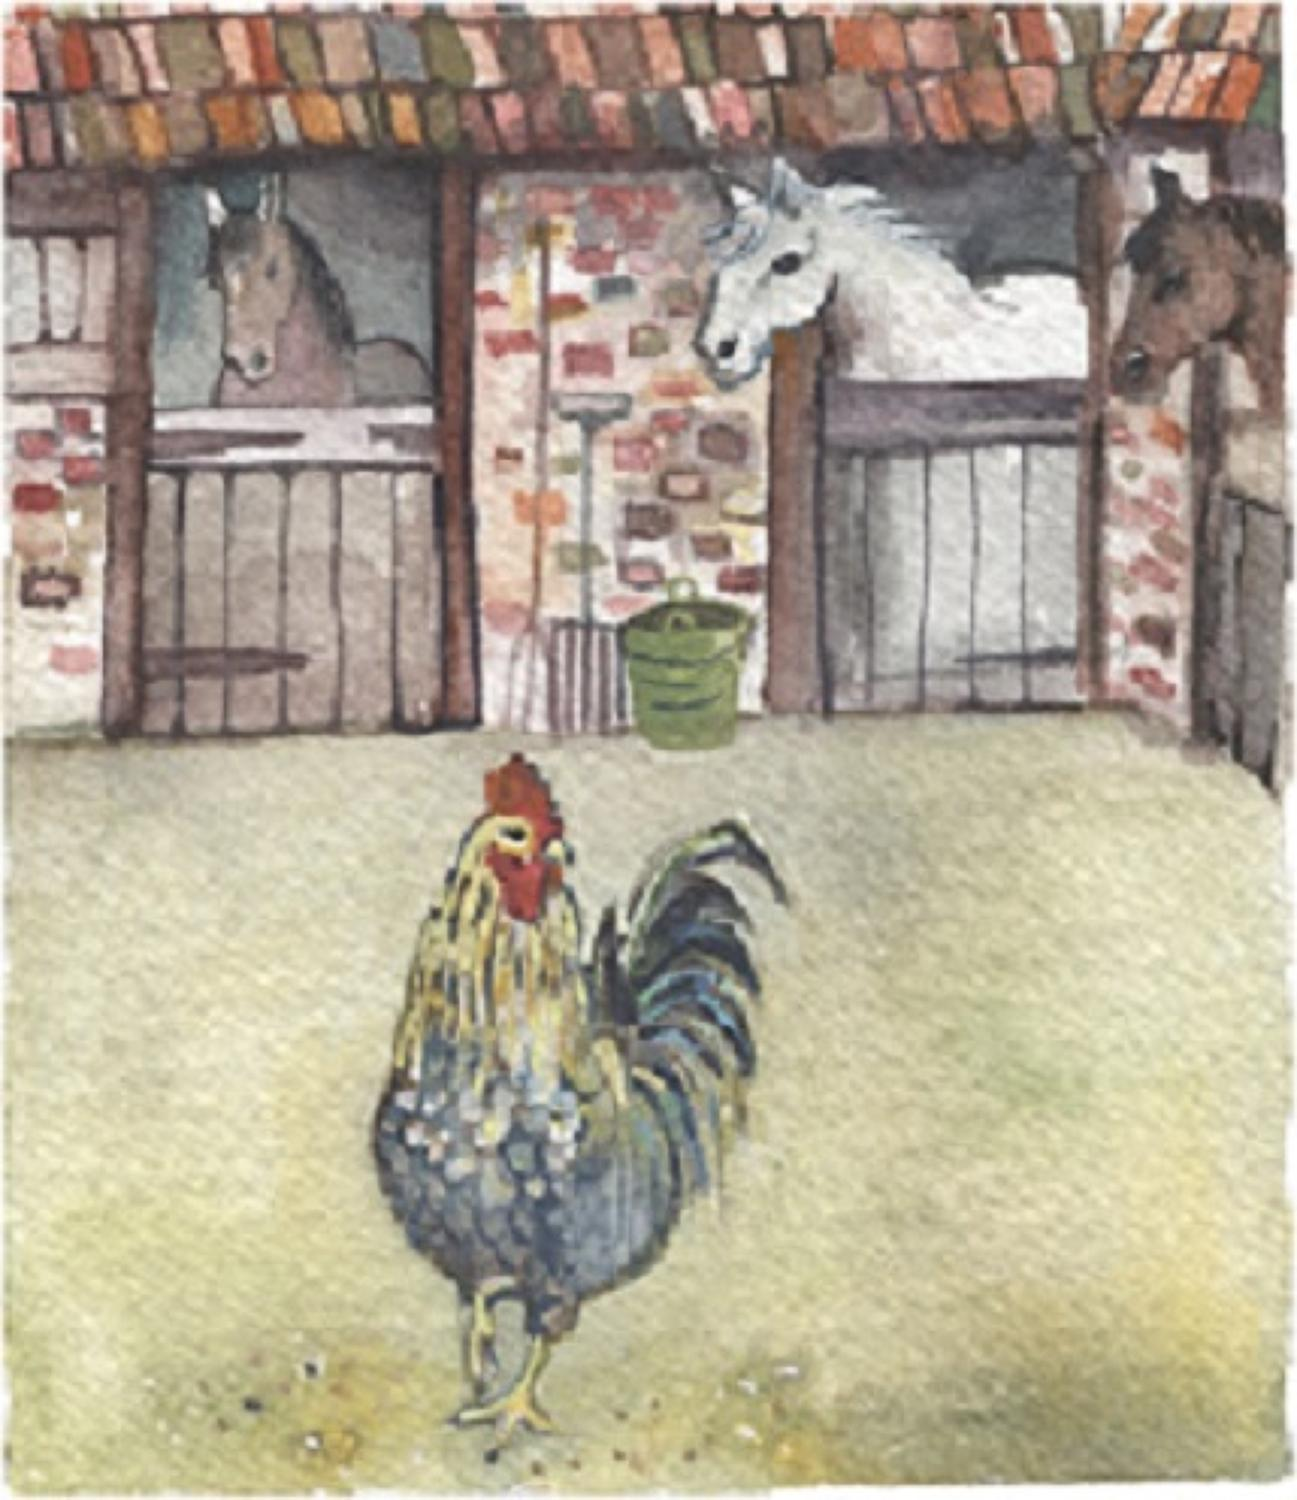 Cockerel in stableyard